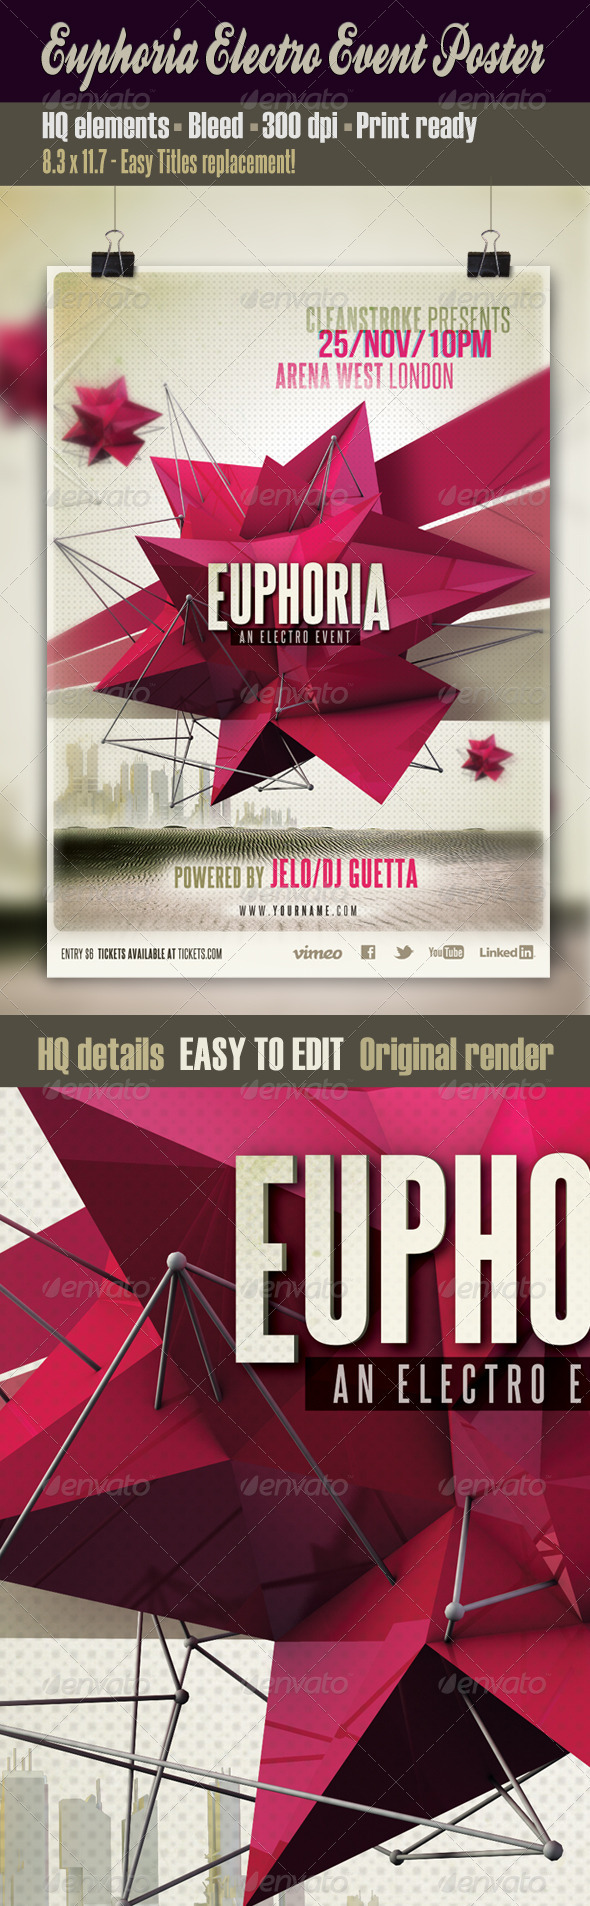 Euphoria Electro Event Poster - Clubs & Parties Events